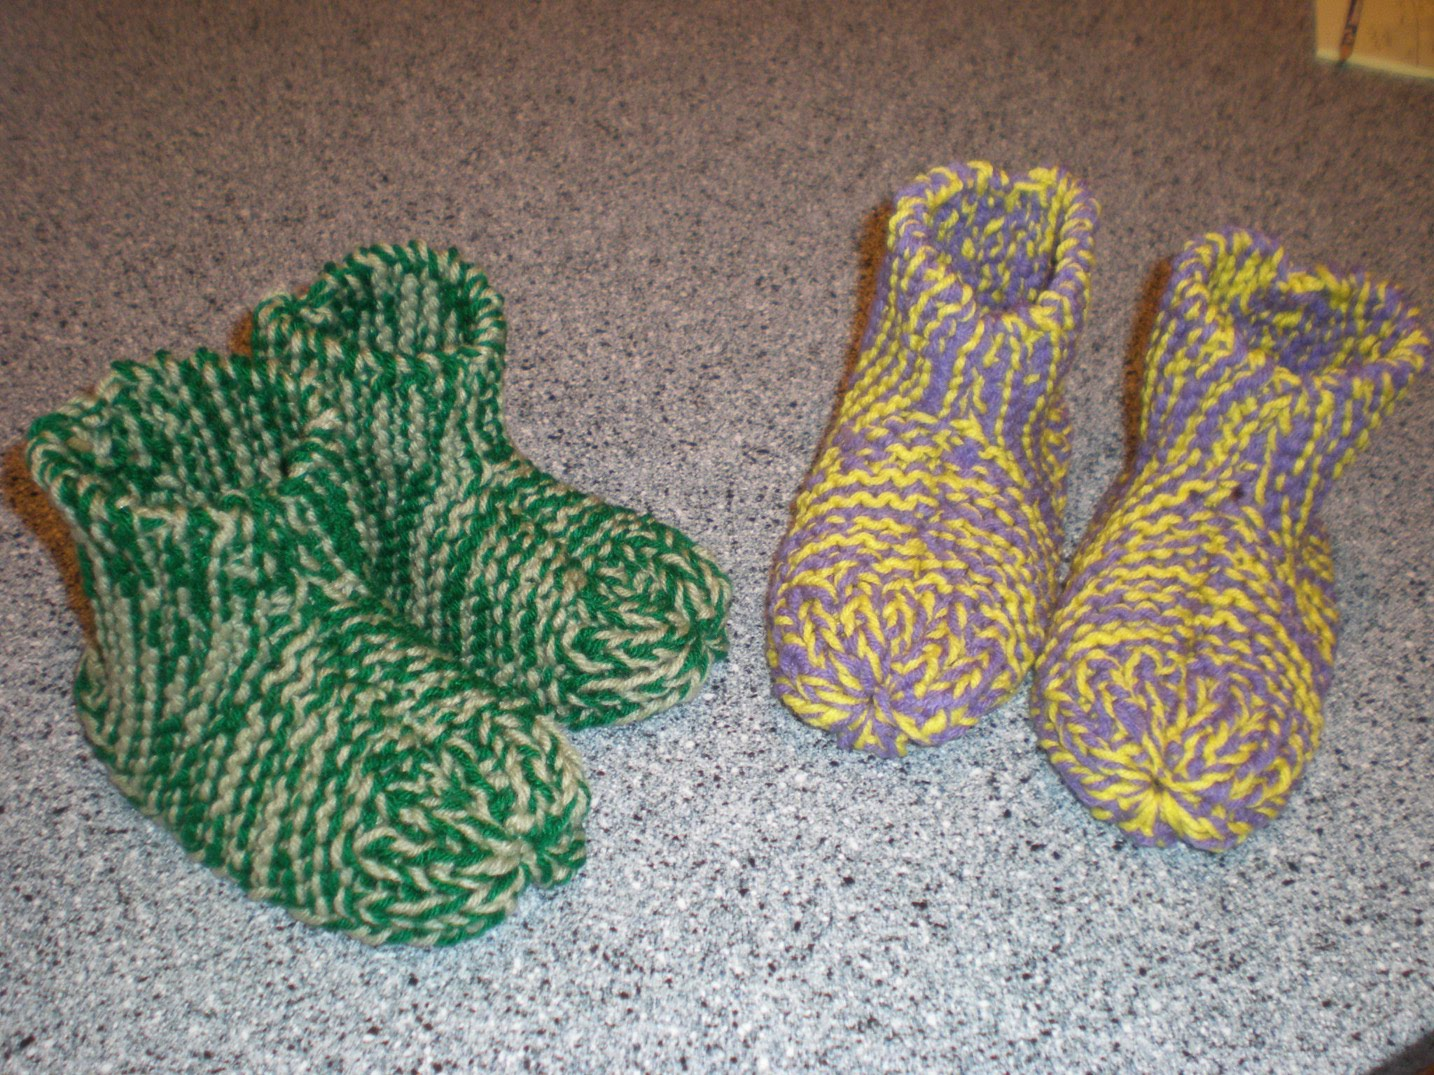 Free Knitting Patterns For Slippers And Socks : FREE KNITTED SLIPPERS PATTERNS - FREE PATTERNS